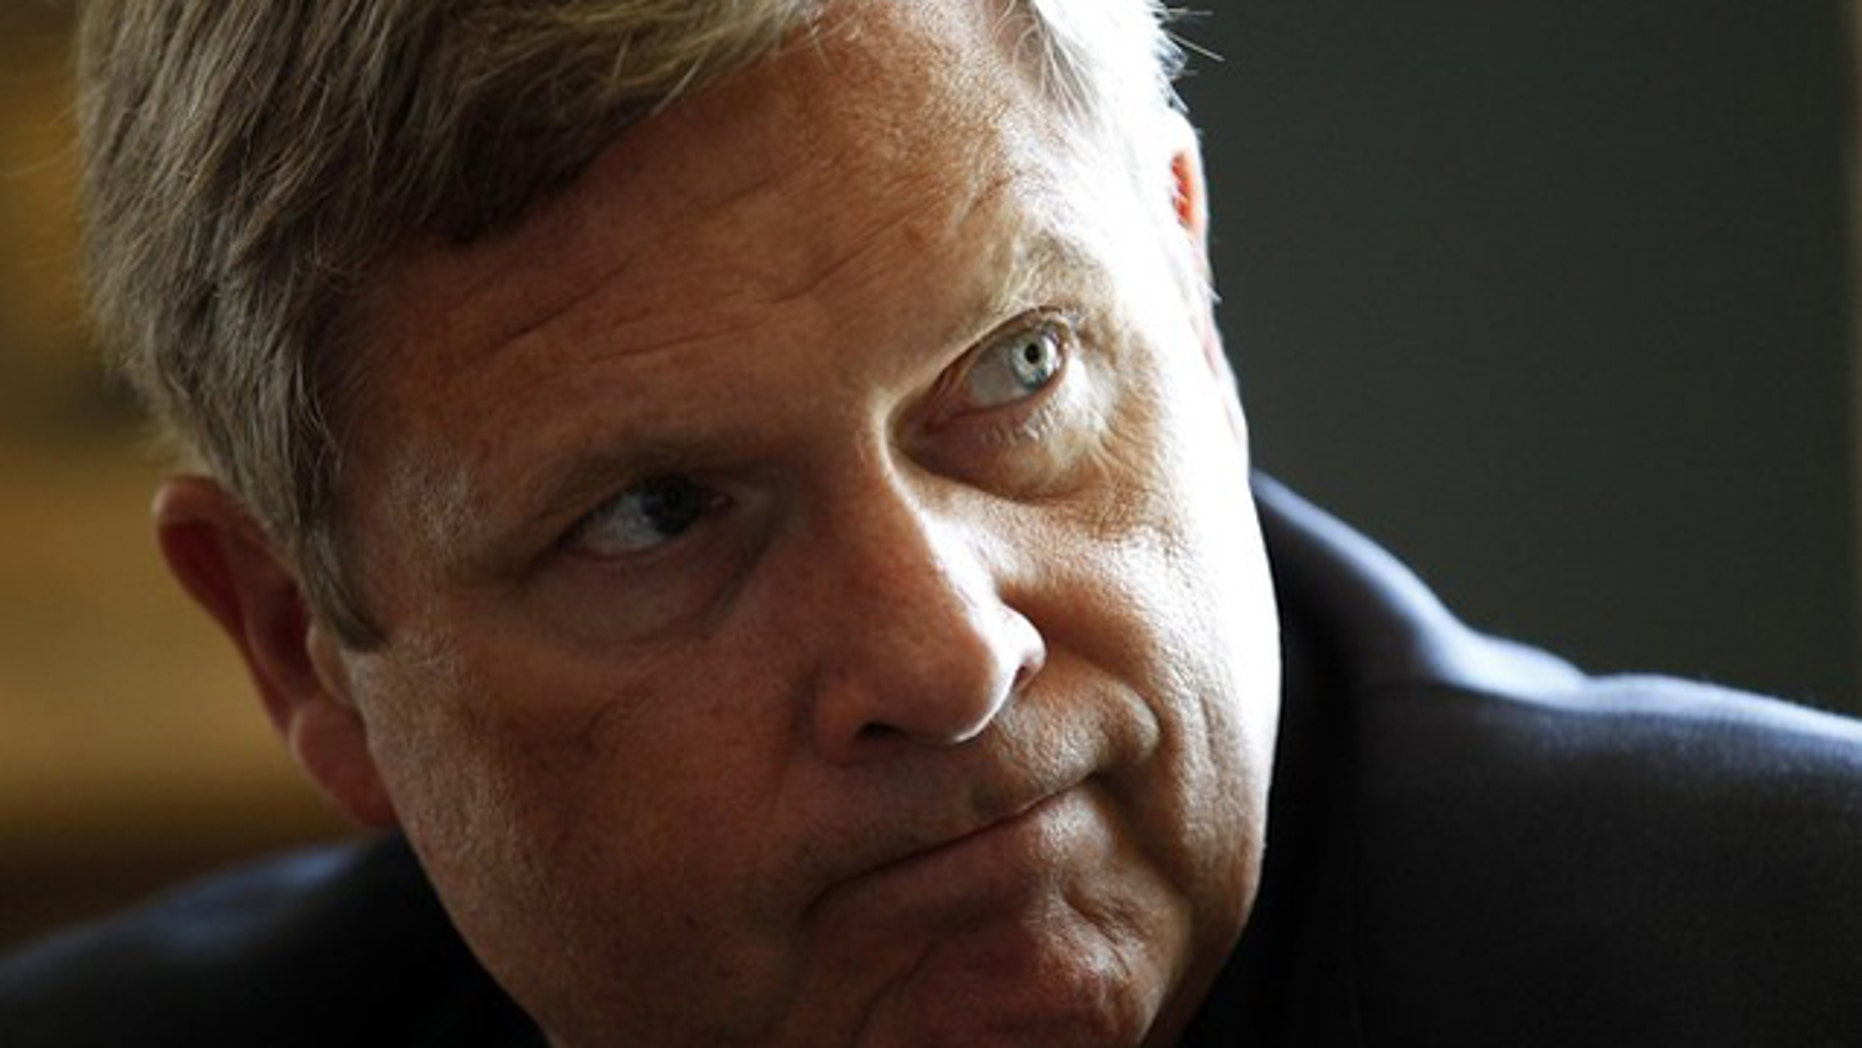 In this Aug. 10 file photo, Agriculture Secretary Tom Vilsack listens to a question during a media roundtable at the U.S. ambassador's residence in Ottawa, Canada. (Reuters Photo)